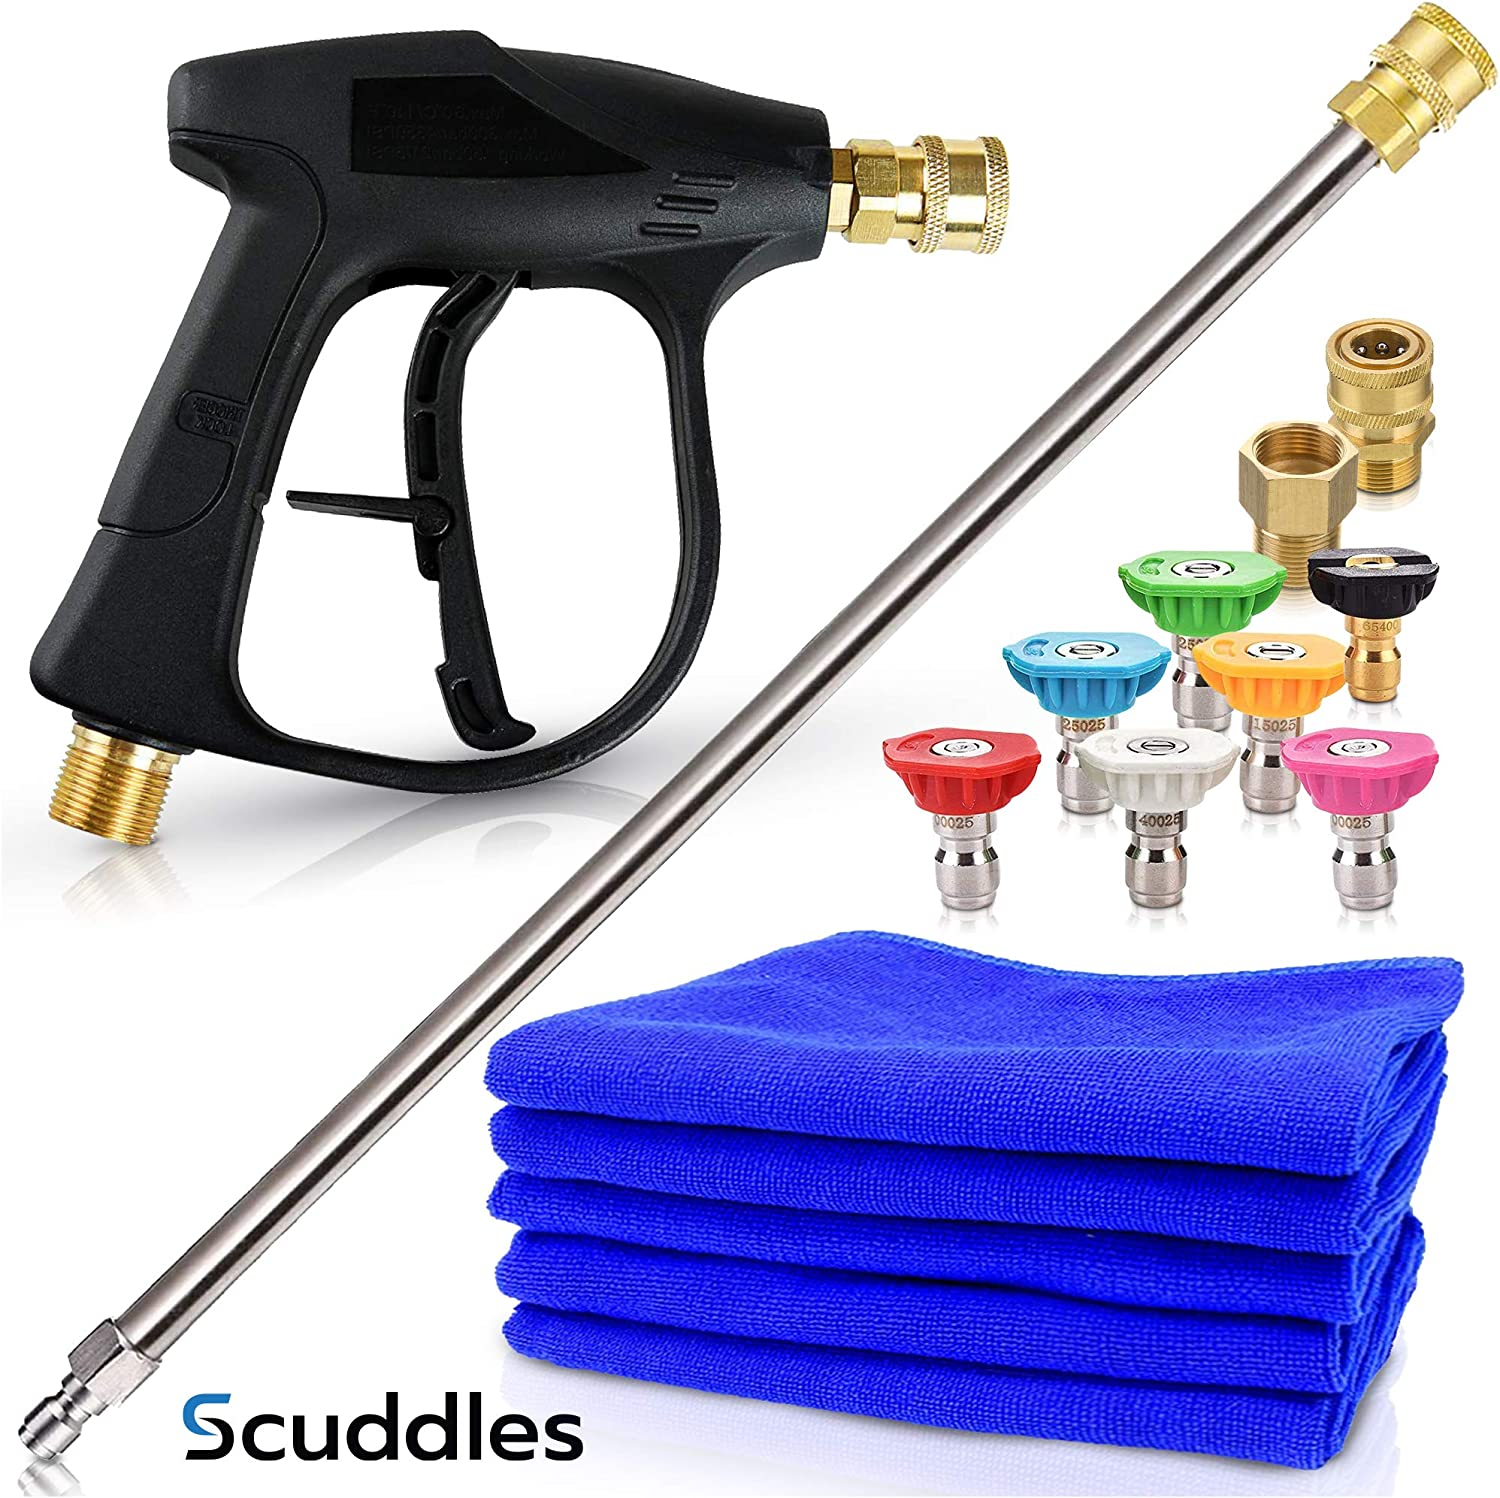 Scuddles Pressure Washer   Wand Extension   Pressure Washer   Upgraded 2021 Model for Cars Full Kit Includes 3 Micro Fiber Towels and Sponge for Detailing Cars Or SUVS Pressure Washer Mega Set : Patio, Lawn & Garden